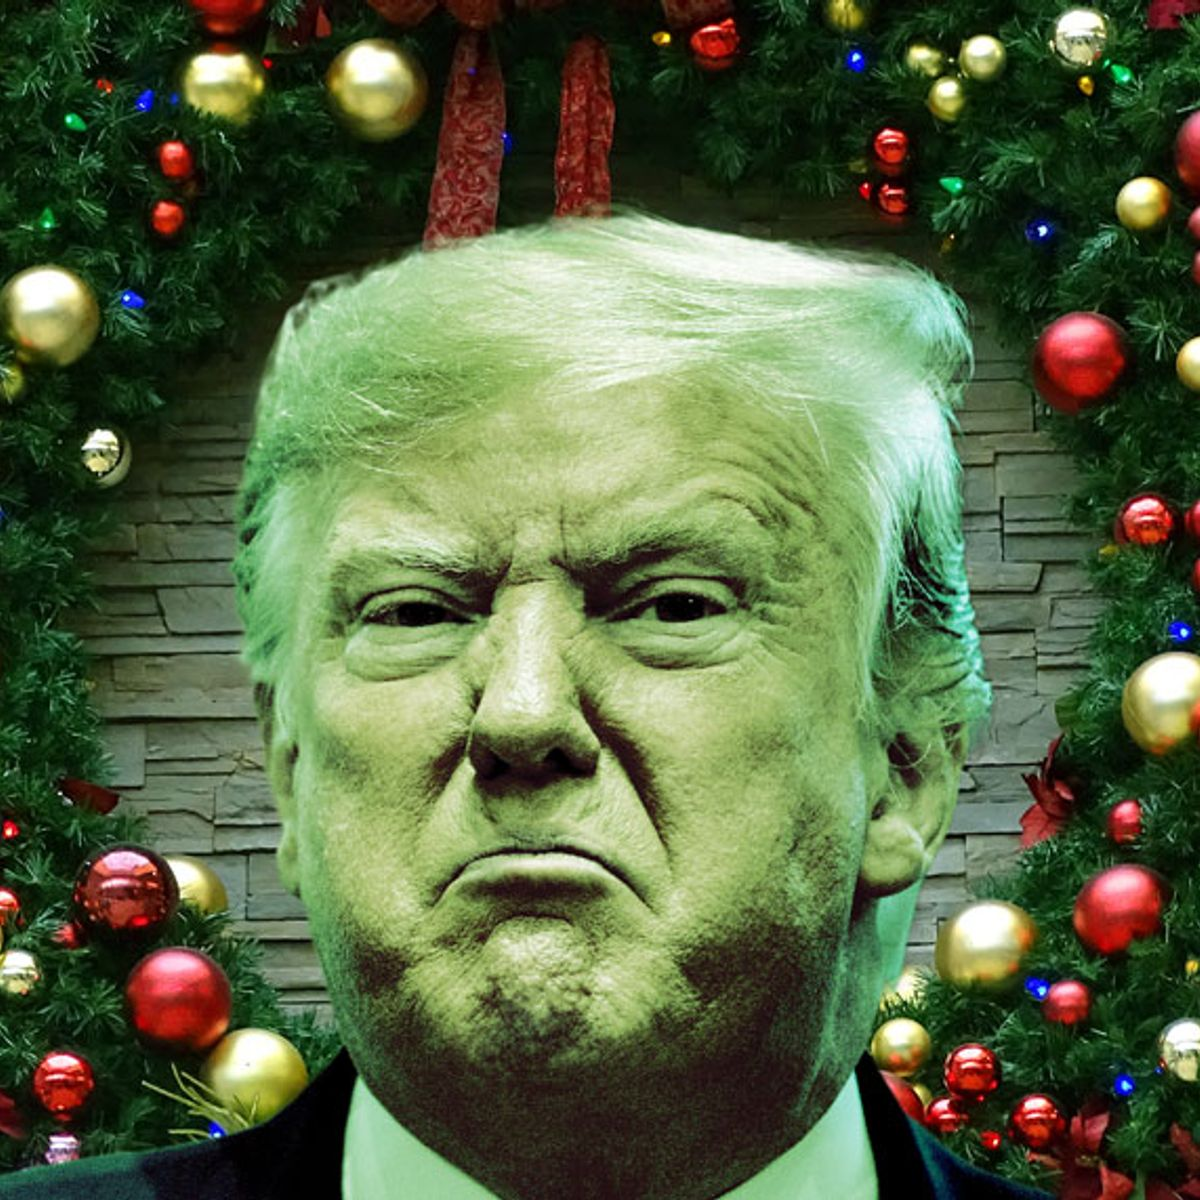 How Donald Trump ruined Christmas: I won't celebrate this year, and he's why